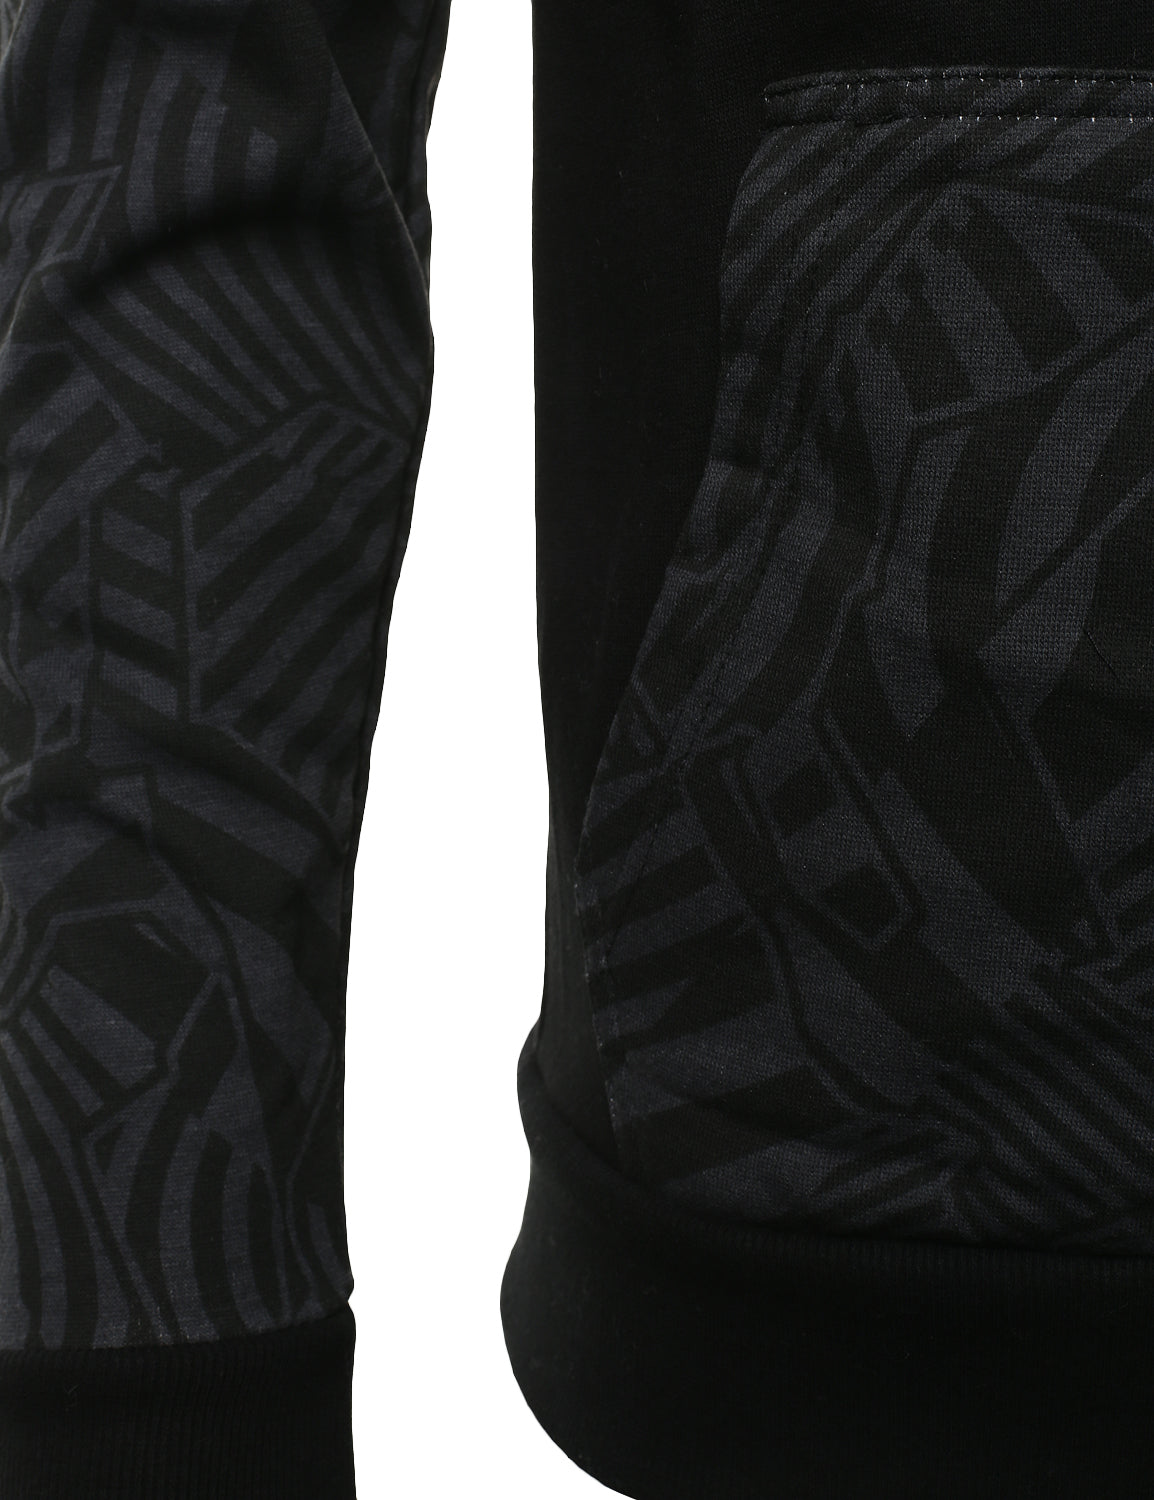 BLACK - Geometric Print Hooded Jacket BLACK XLARGE